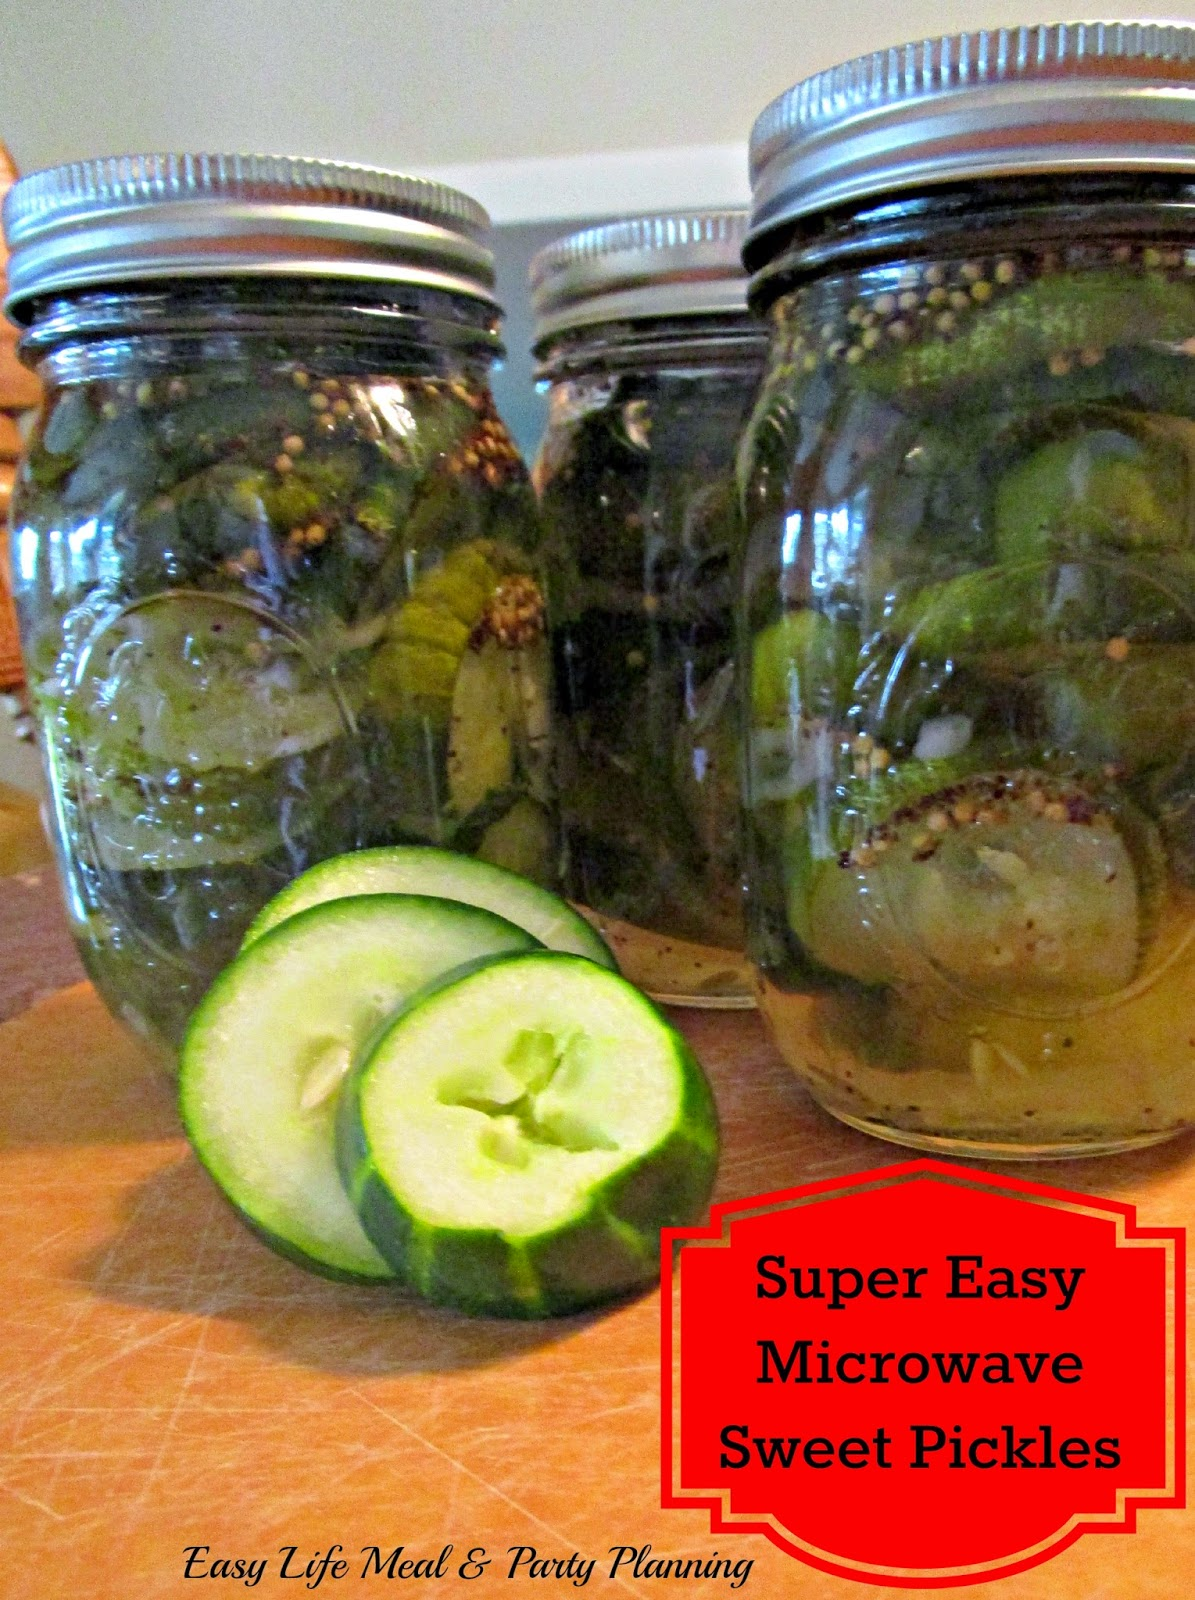 ... Meal and Party Planning: Quick & Easy Sweet Pickles - Microwave Quick